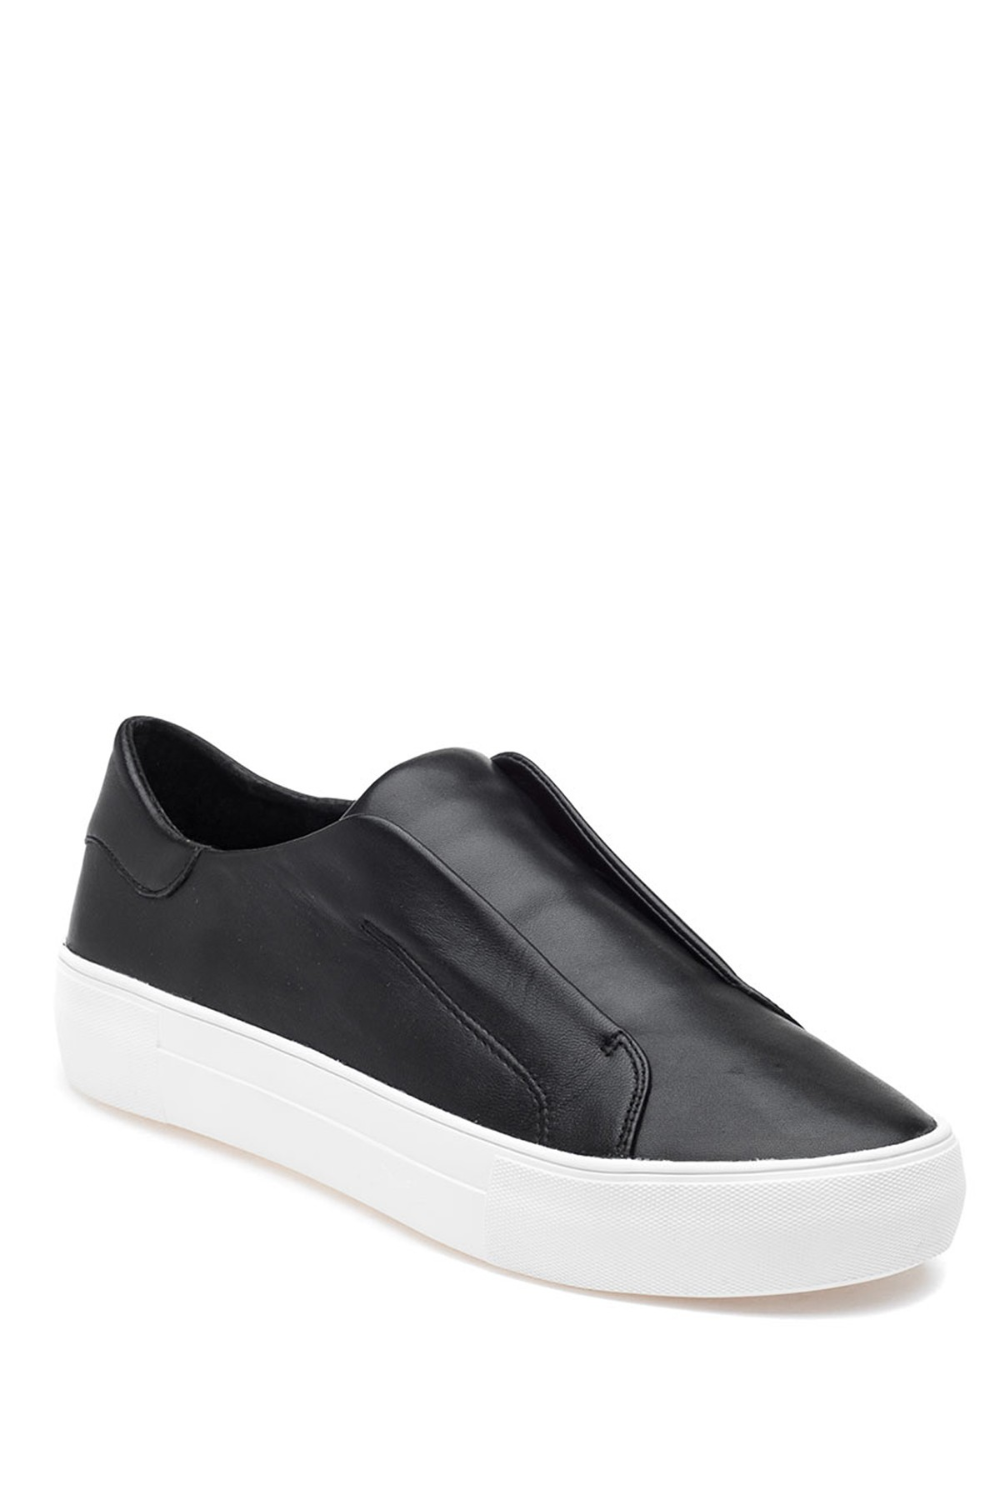 J Slides Alara Leather Slip On Sneaker Nordstrom Rack In 2020 Slip On Sneaker Leather Slip Ons Slip On